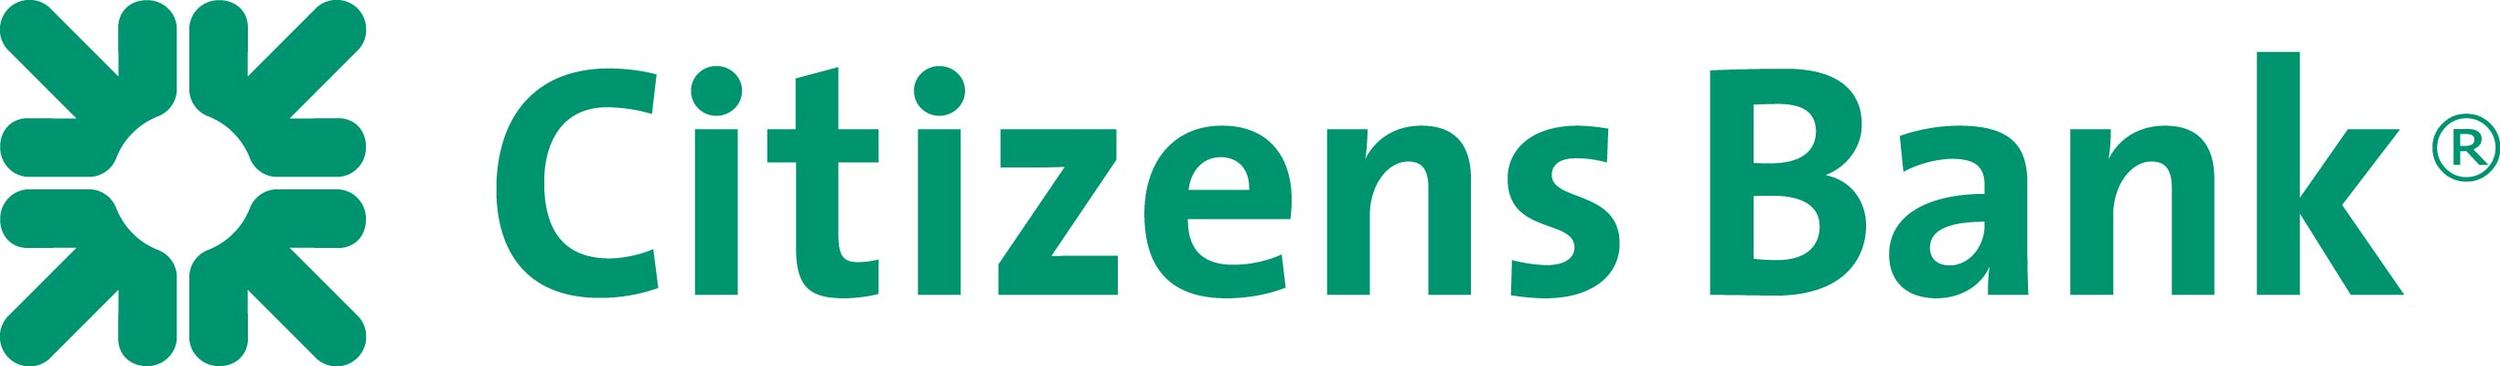 citizensbanklogo.jpg